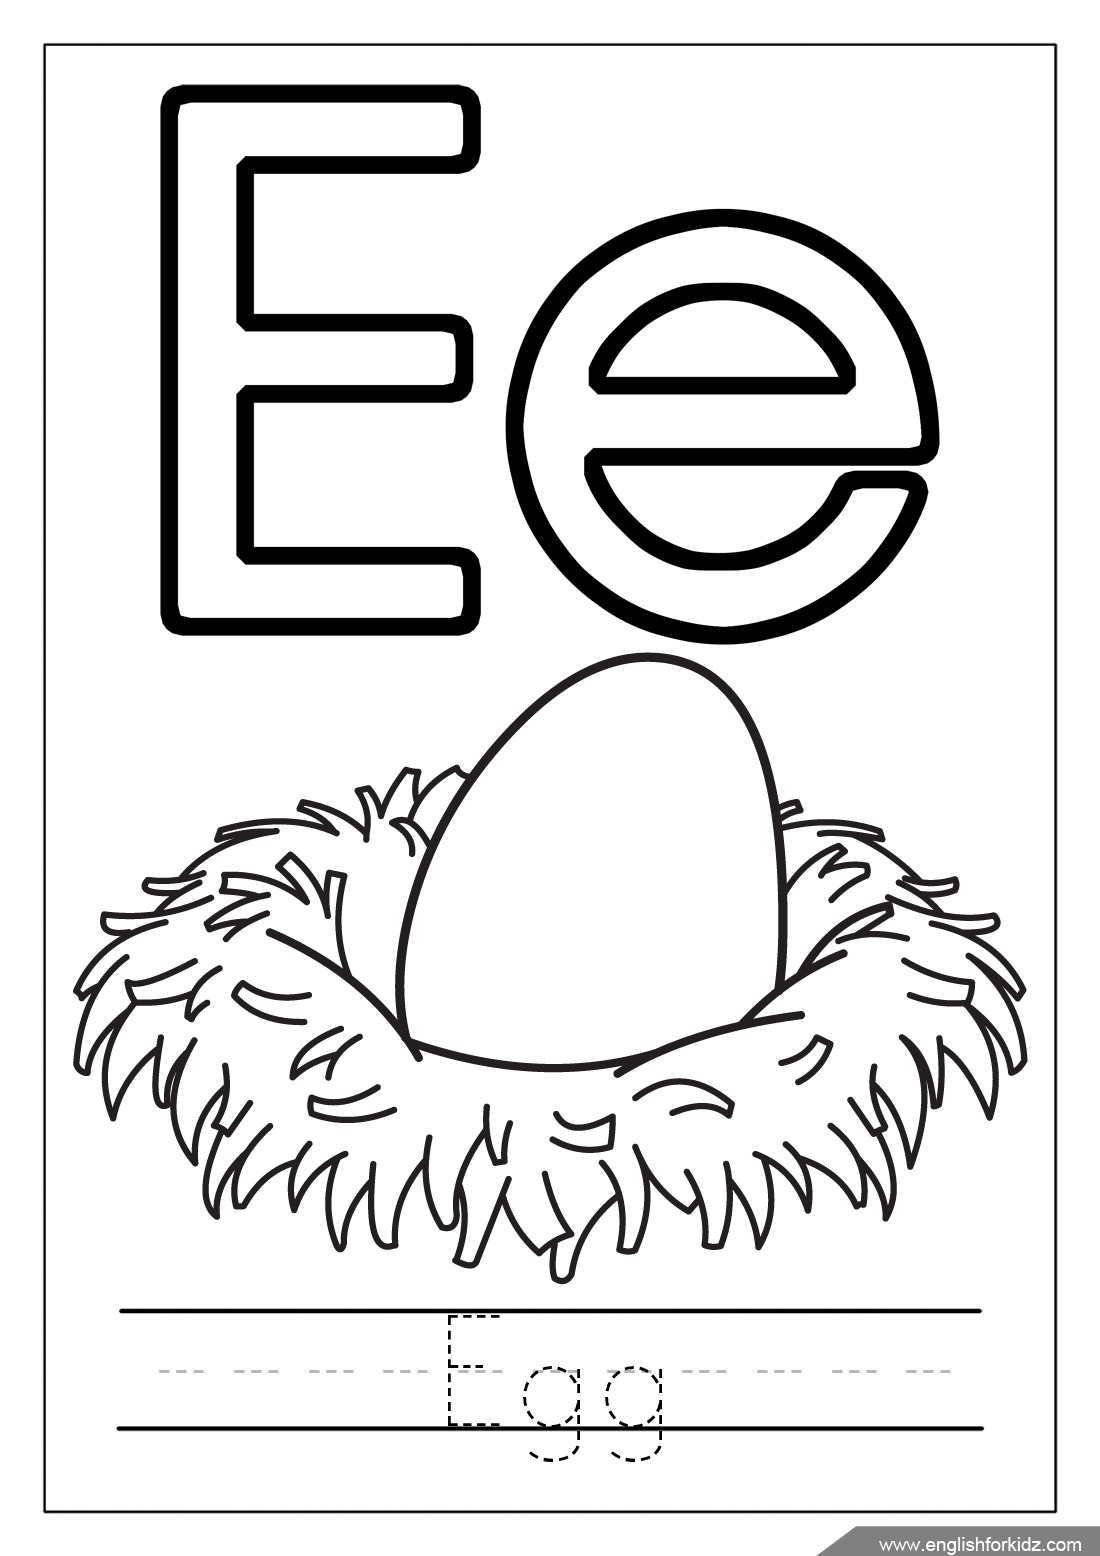 Alphabet Coloring Pages Letter A : Printable alphabet coloring pages letters a j